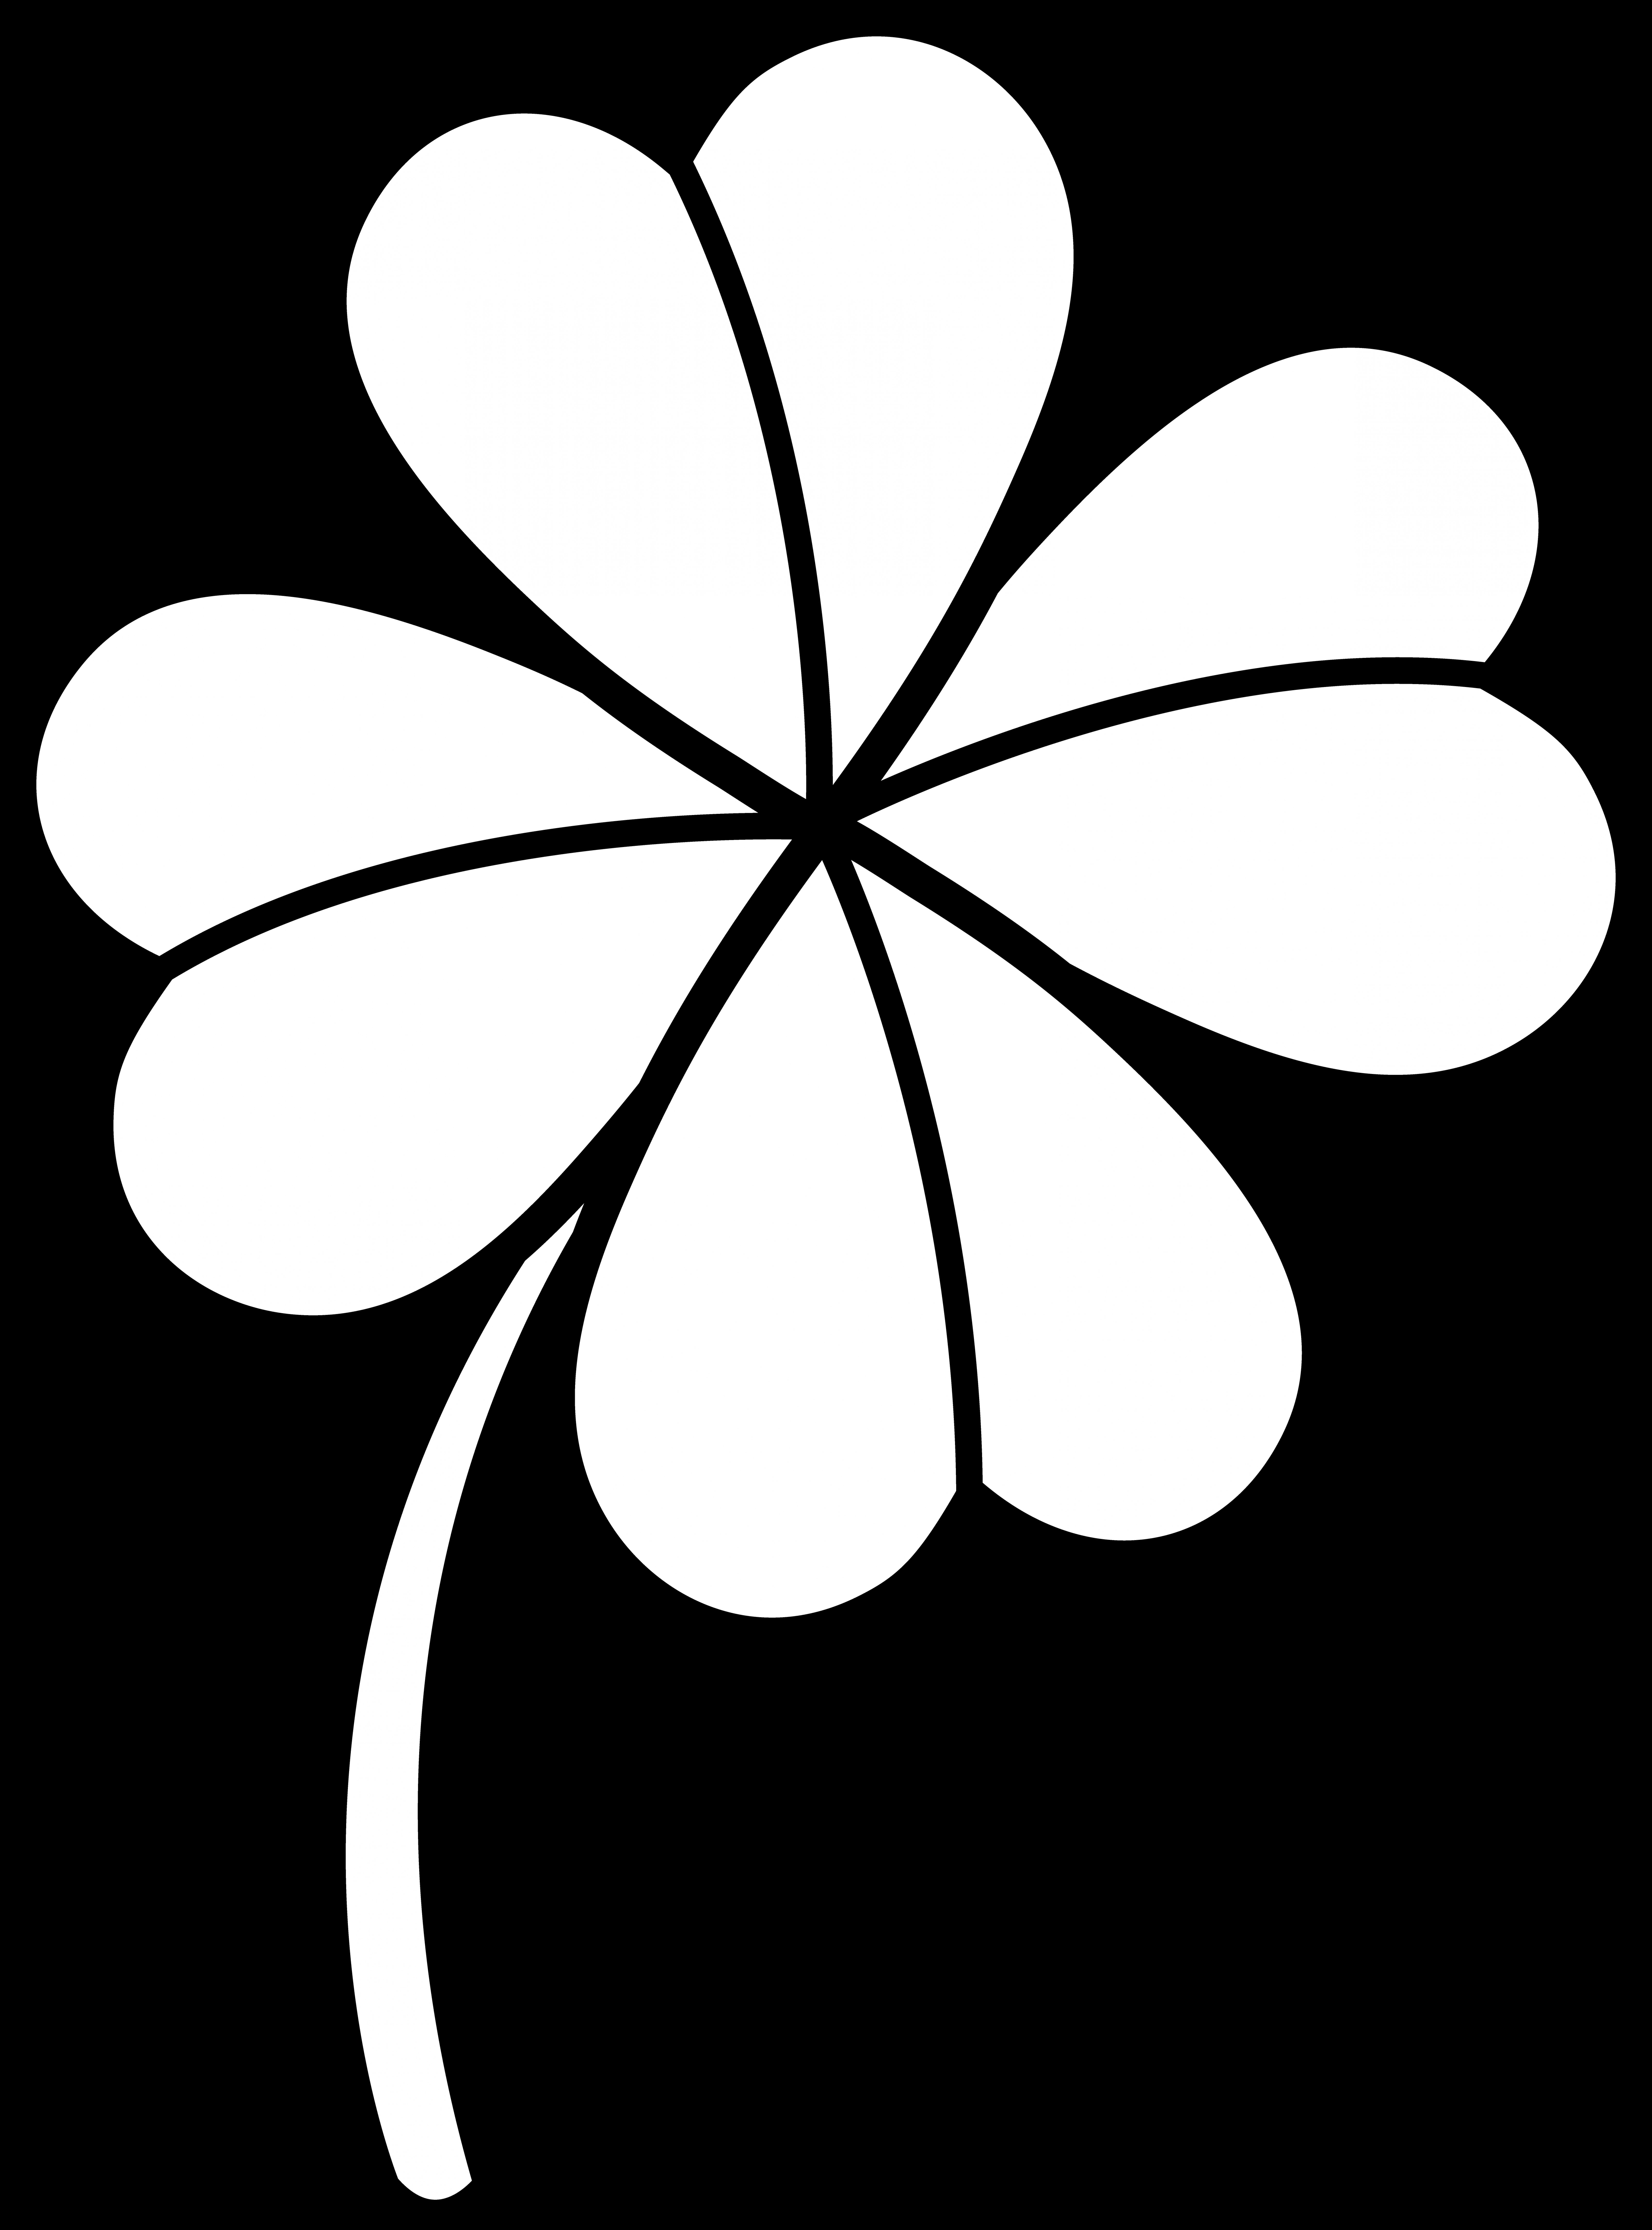 Crown Clover Clipart Black And White.